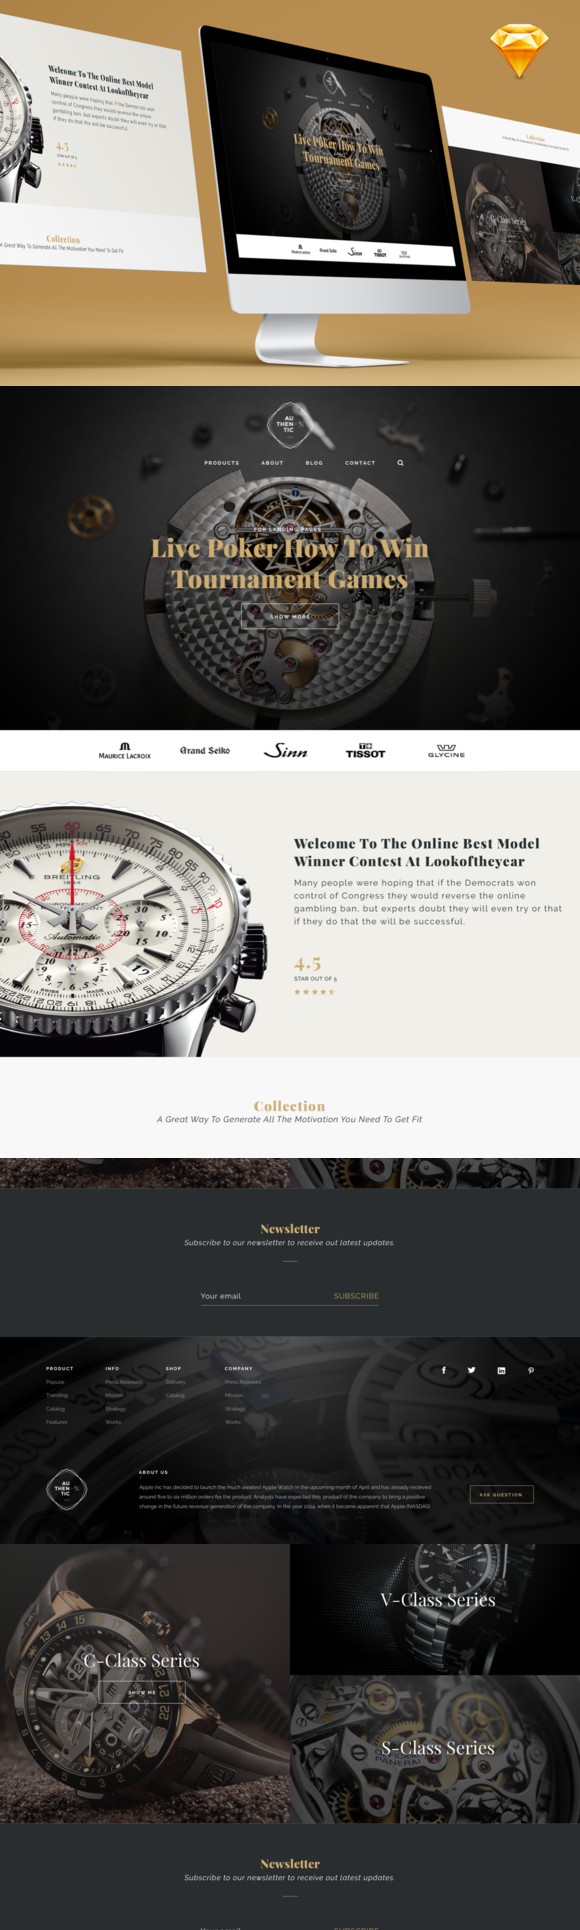 Luxury Watch Landing Page. Landing Pages Templates. $2.00 | Landing ...